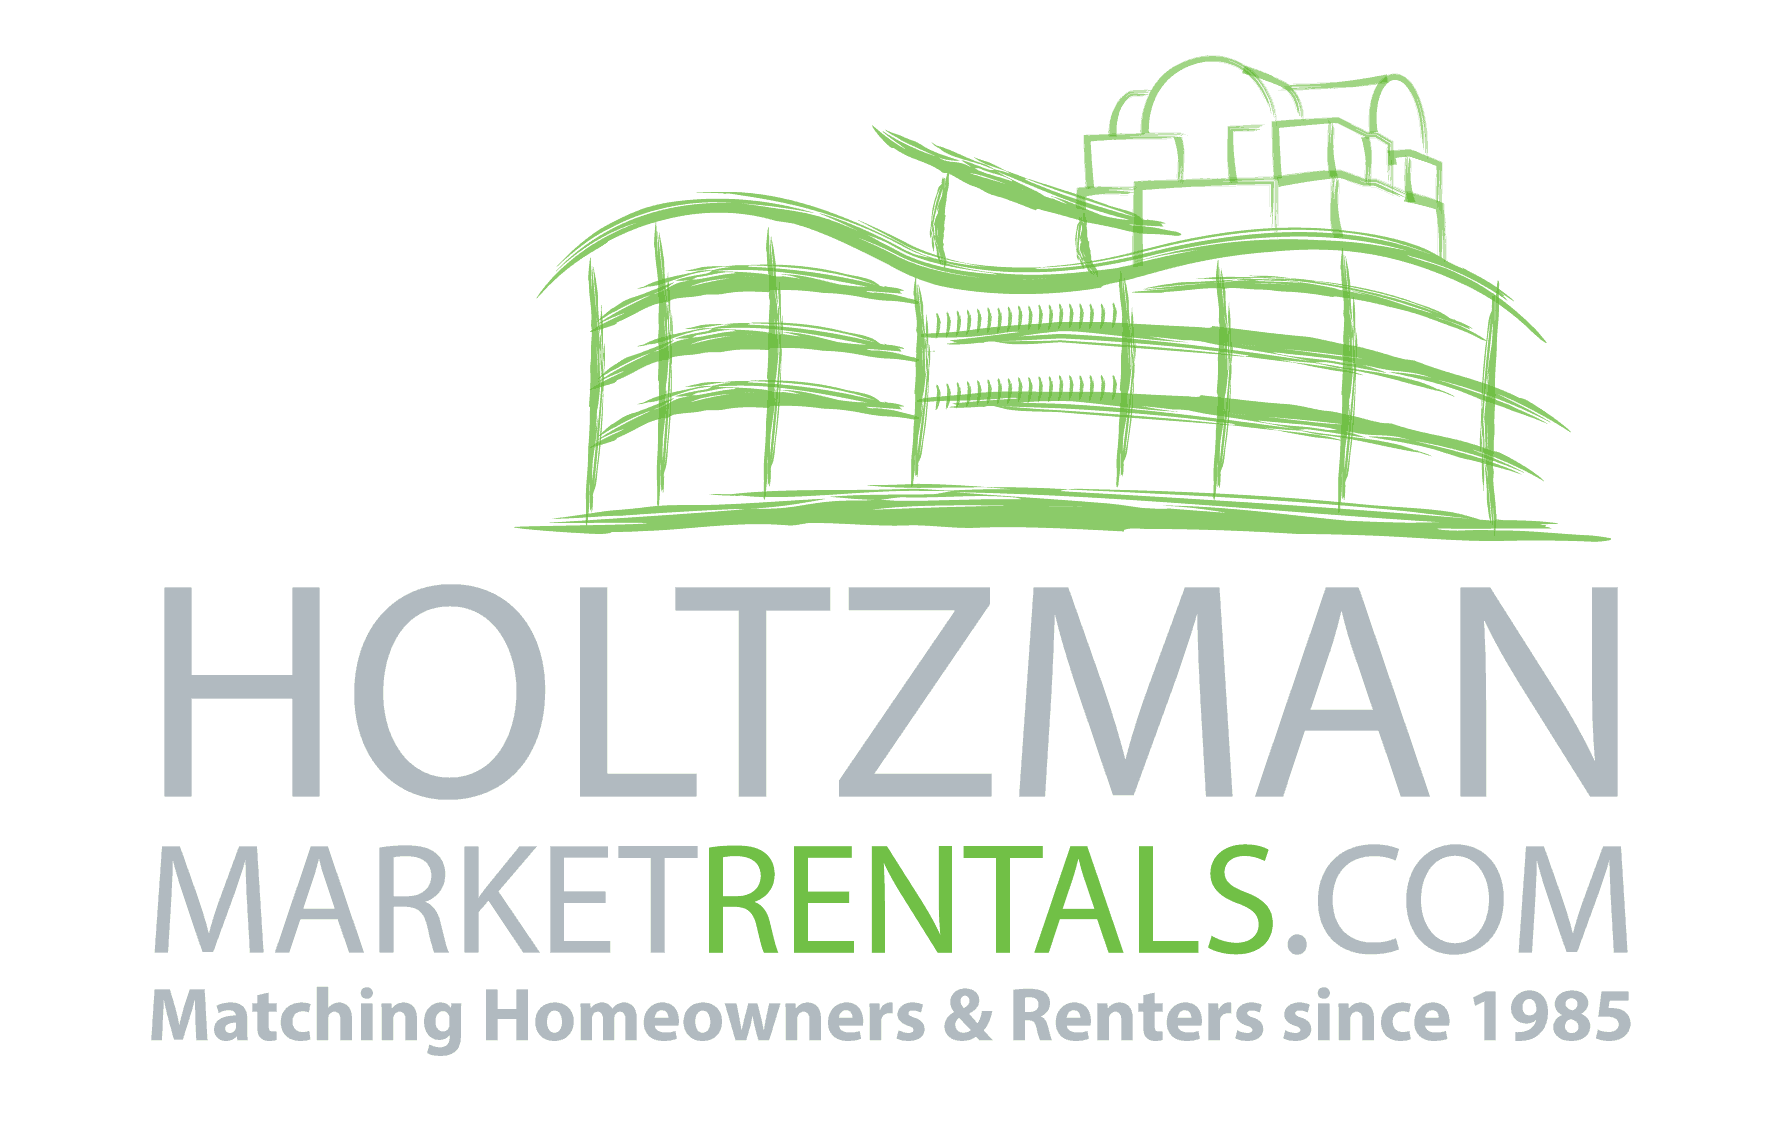 Market Rentals Matching Renters And Homeowners